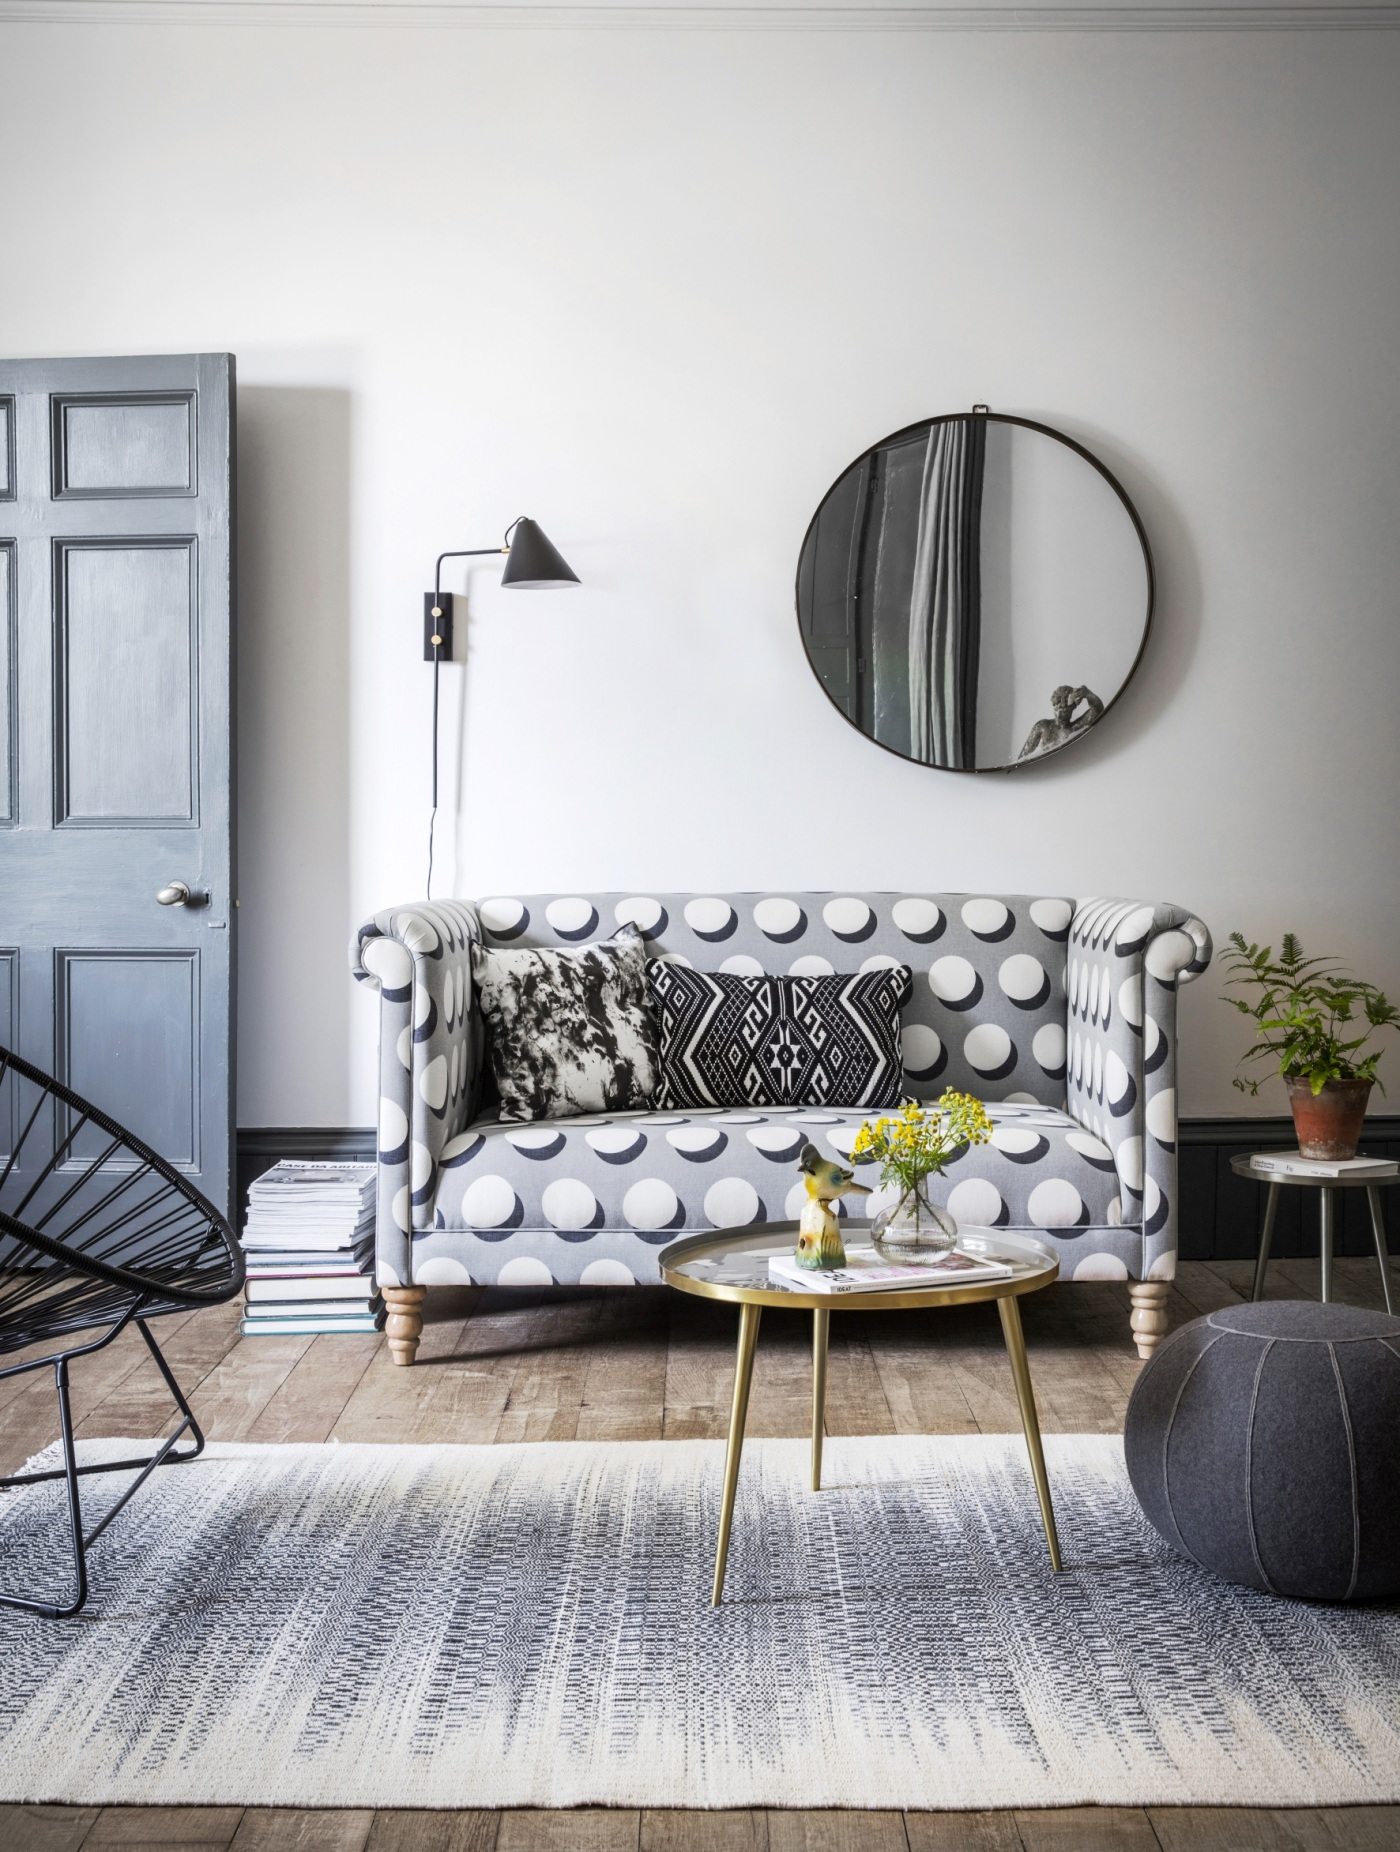 pp-frida-chair-310-simon-two-seater-in-artic-circle-from-1100-pablo-wall-light-115-grantham-mirror-135-dolomite-cushion-38